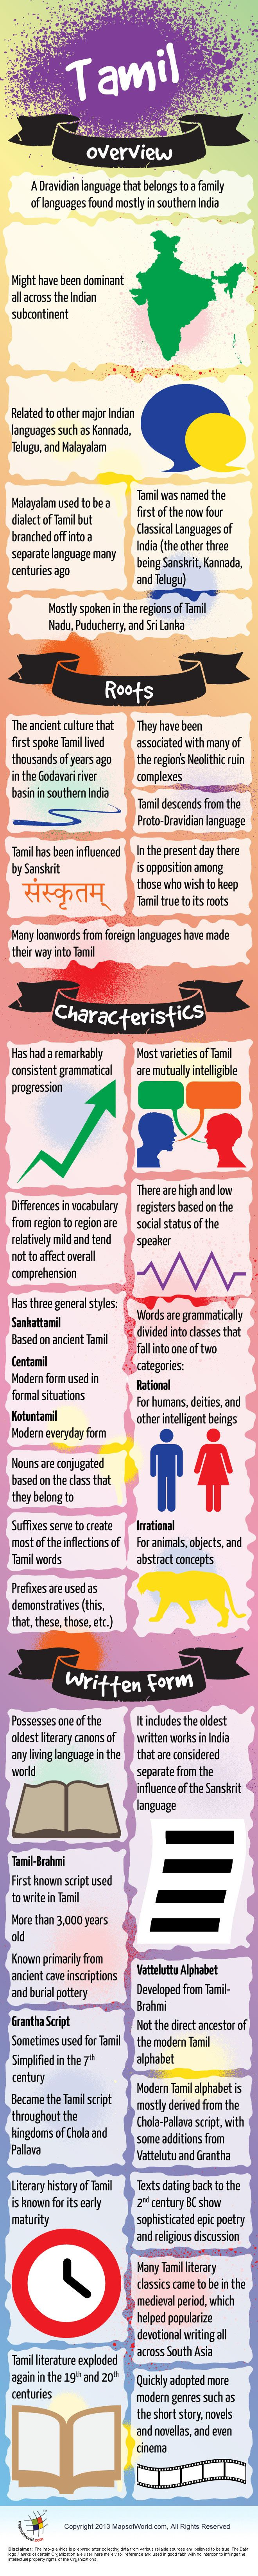 Infographic of Tamil Language: for the ones who want to start to learn this beautiful language!